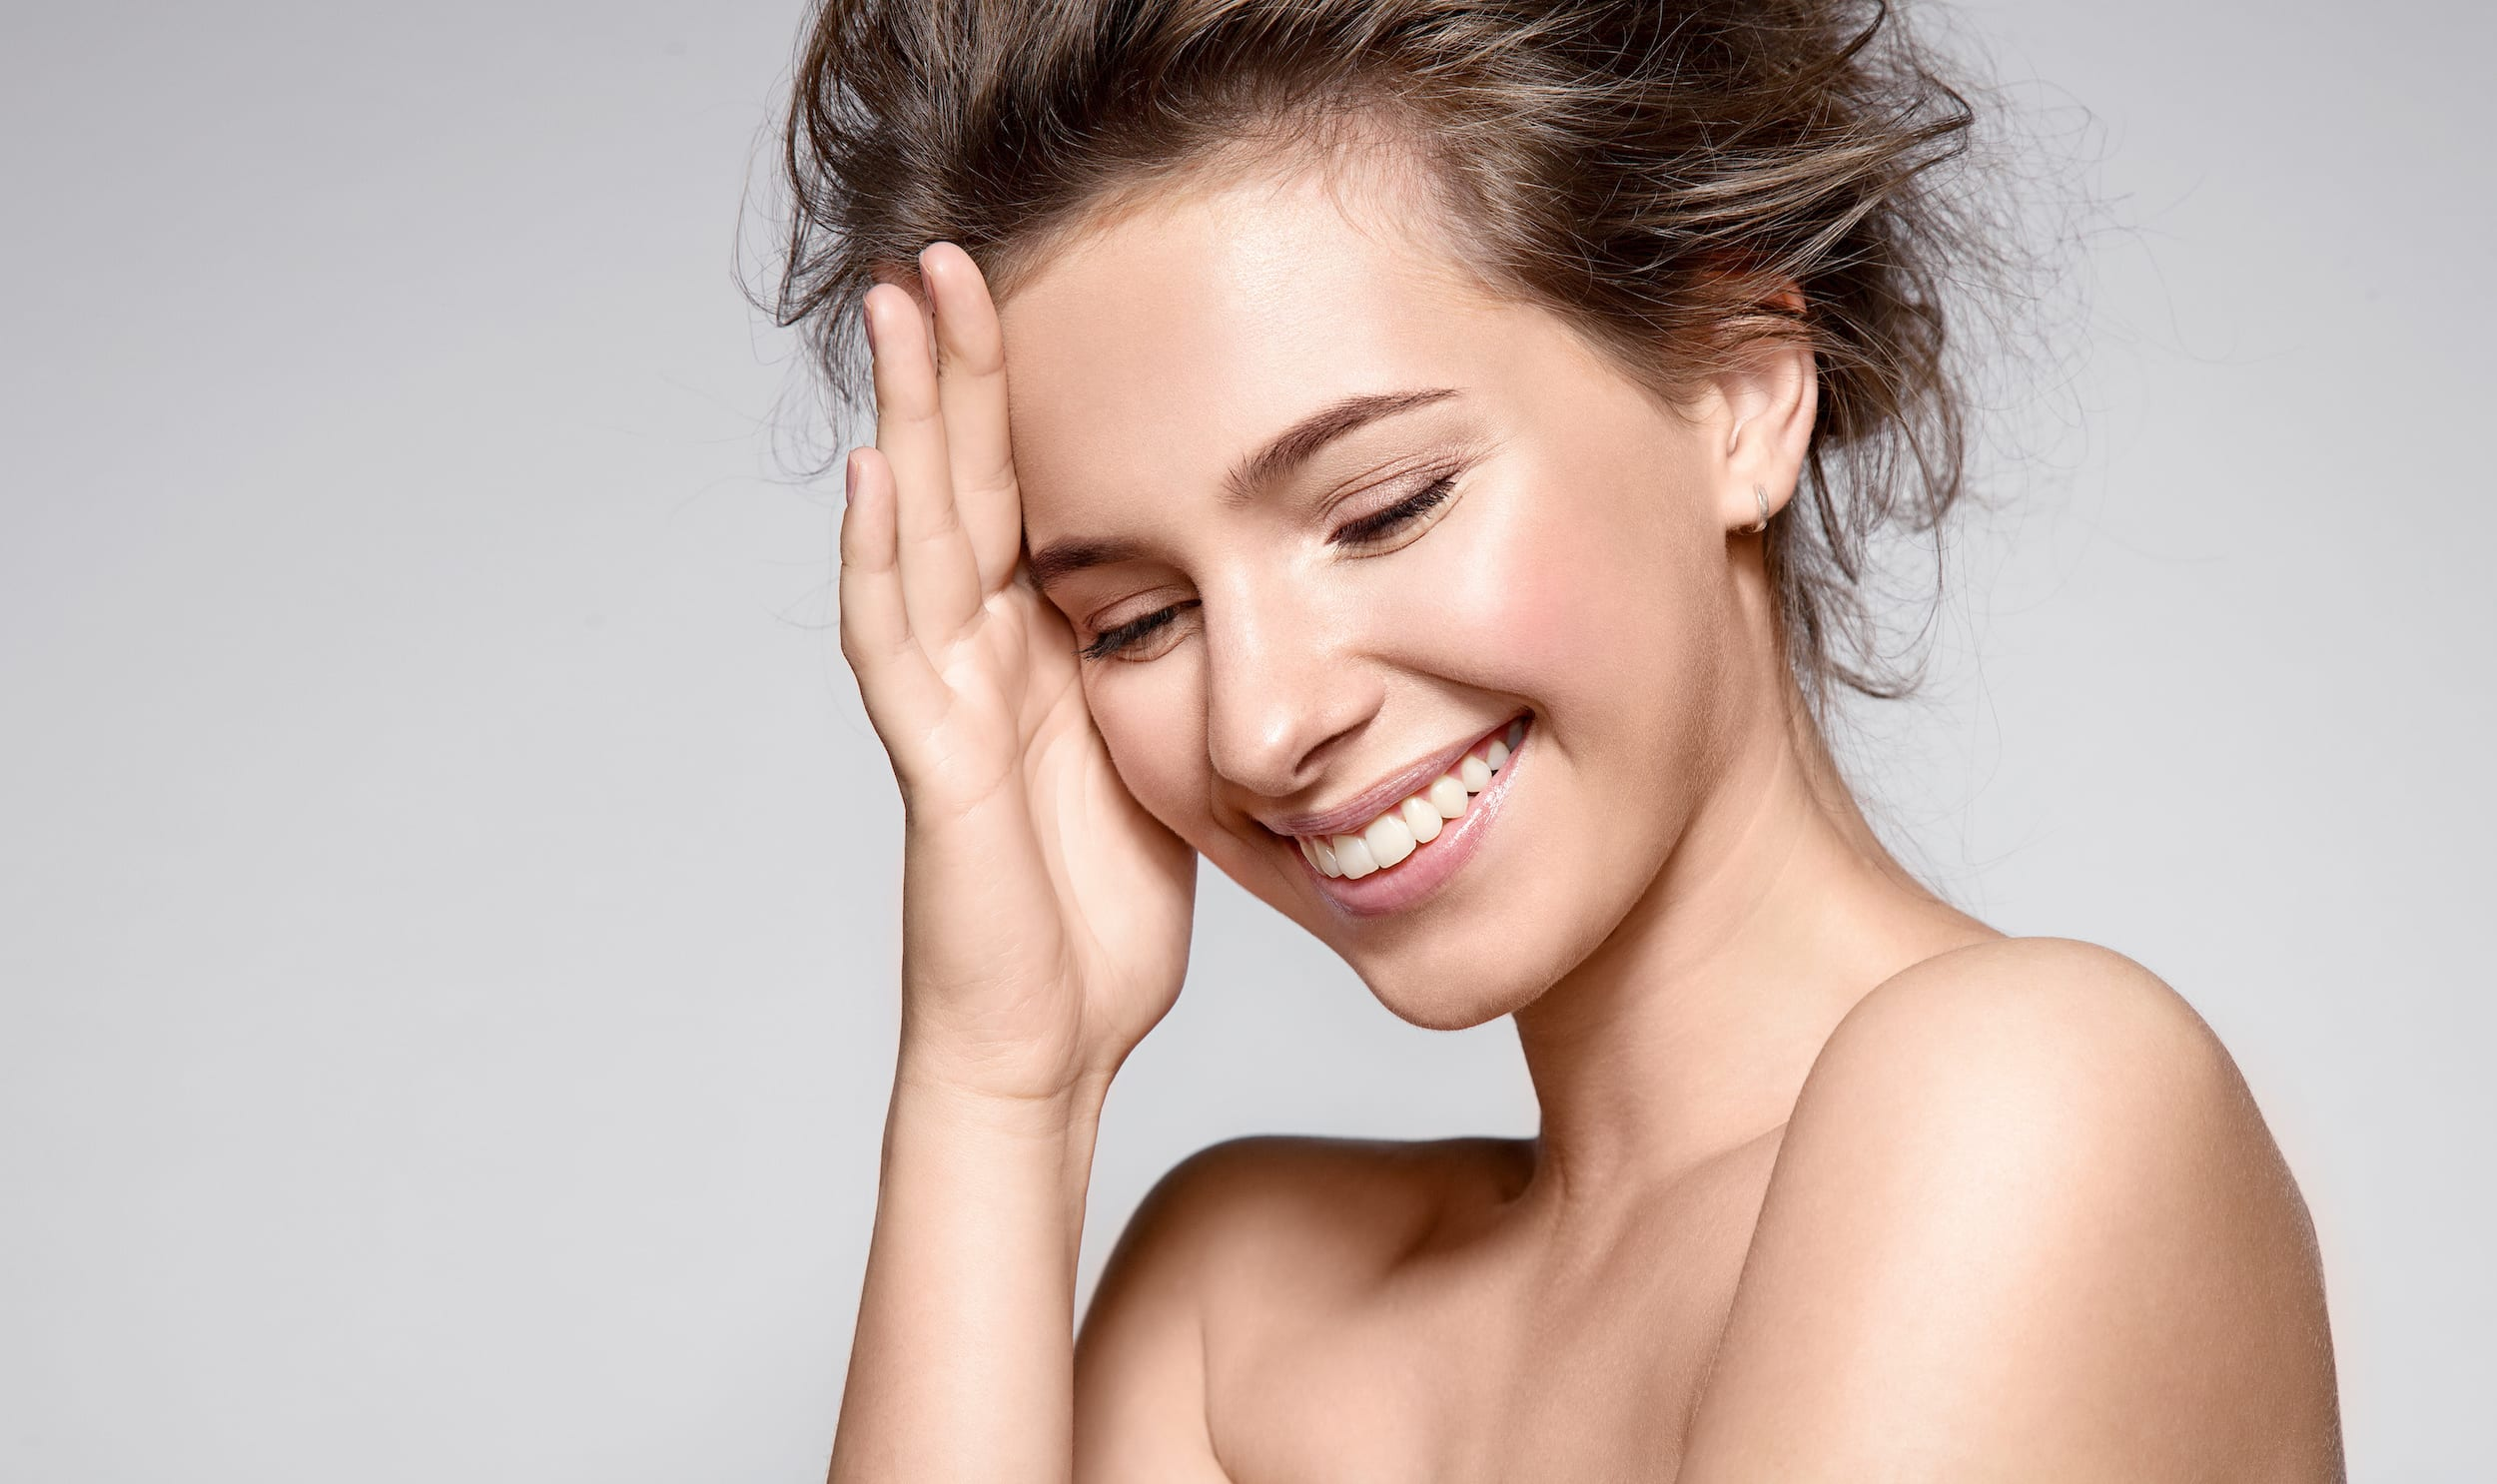 Beautiful smiling woman with natural make-up ready to see Plastic Surgeon in Winnipeg, MB